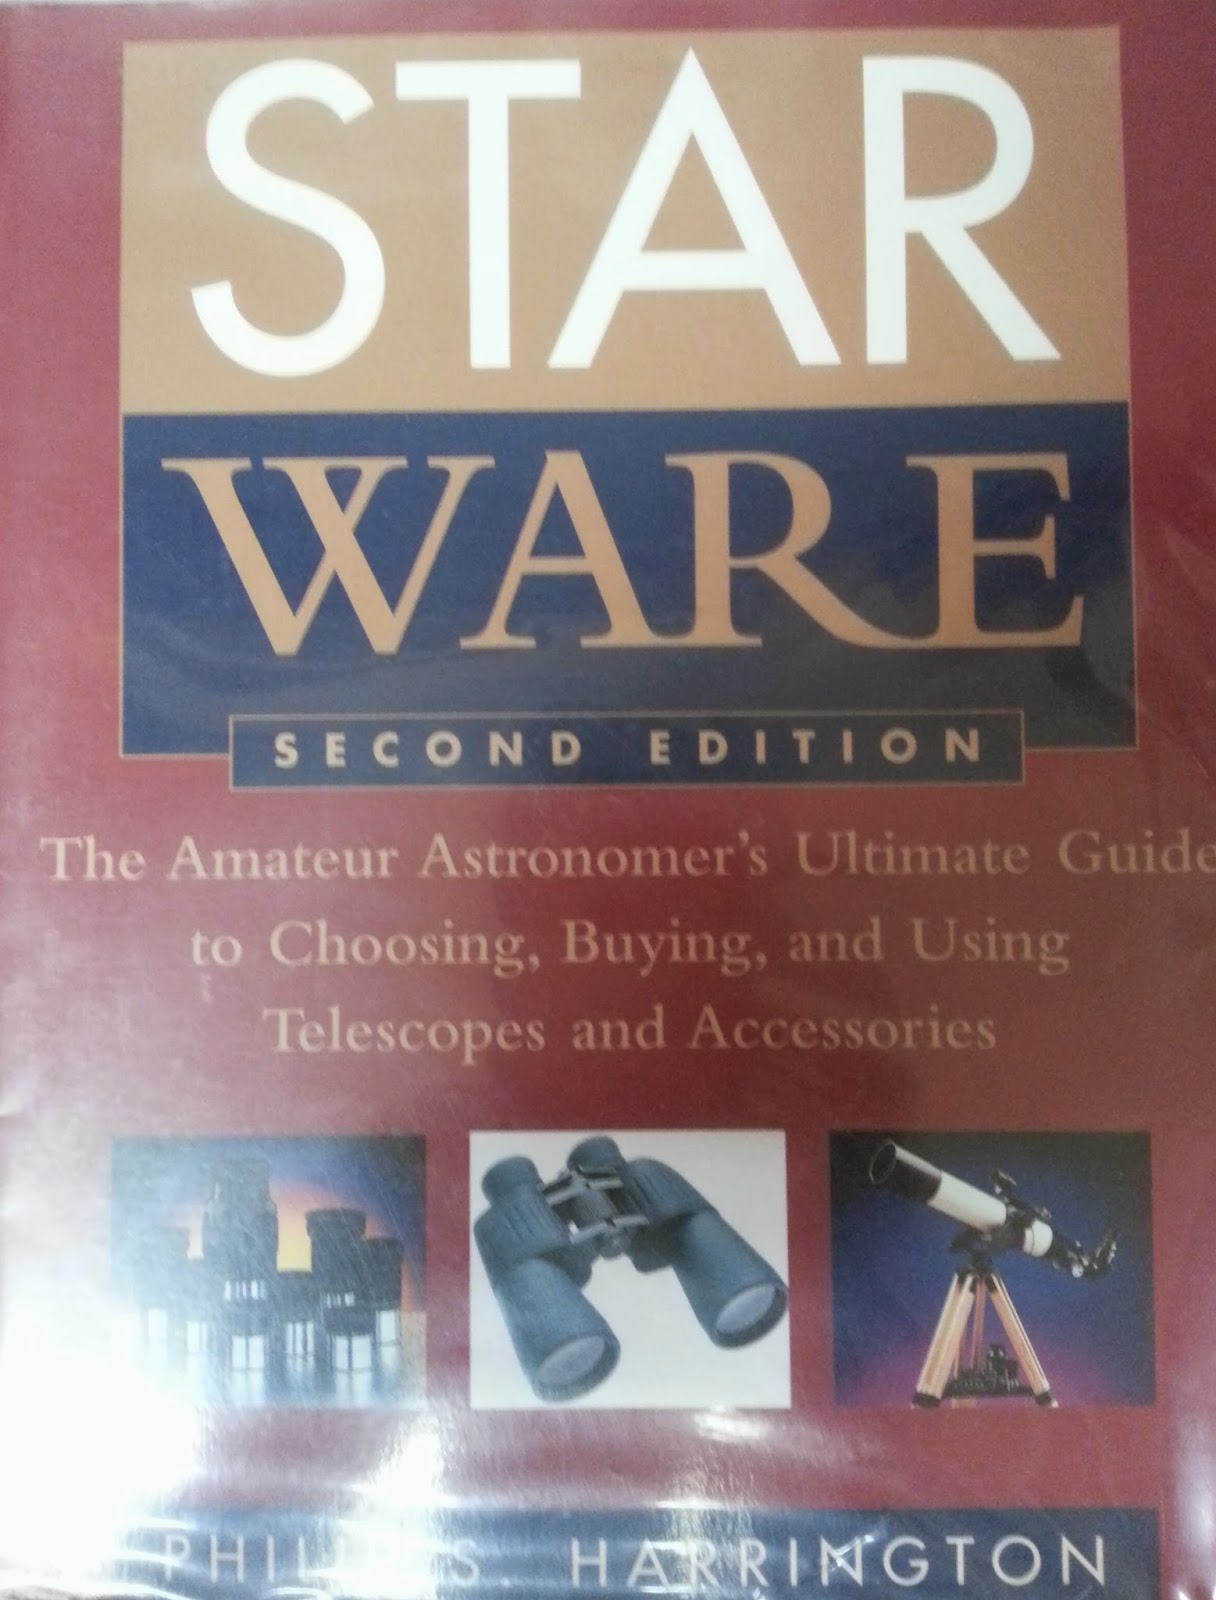 Darrenw astroblogger 2014 star ware 2nd 3rd and 4th edition author phil harrington publisher john wiley and sons geenschuldenfo Choice Image